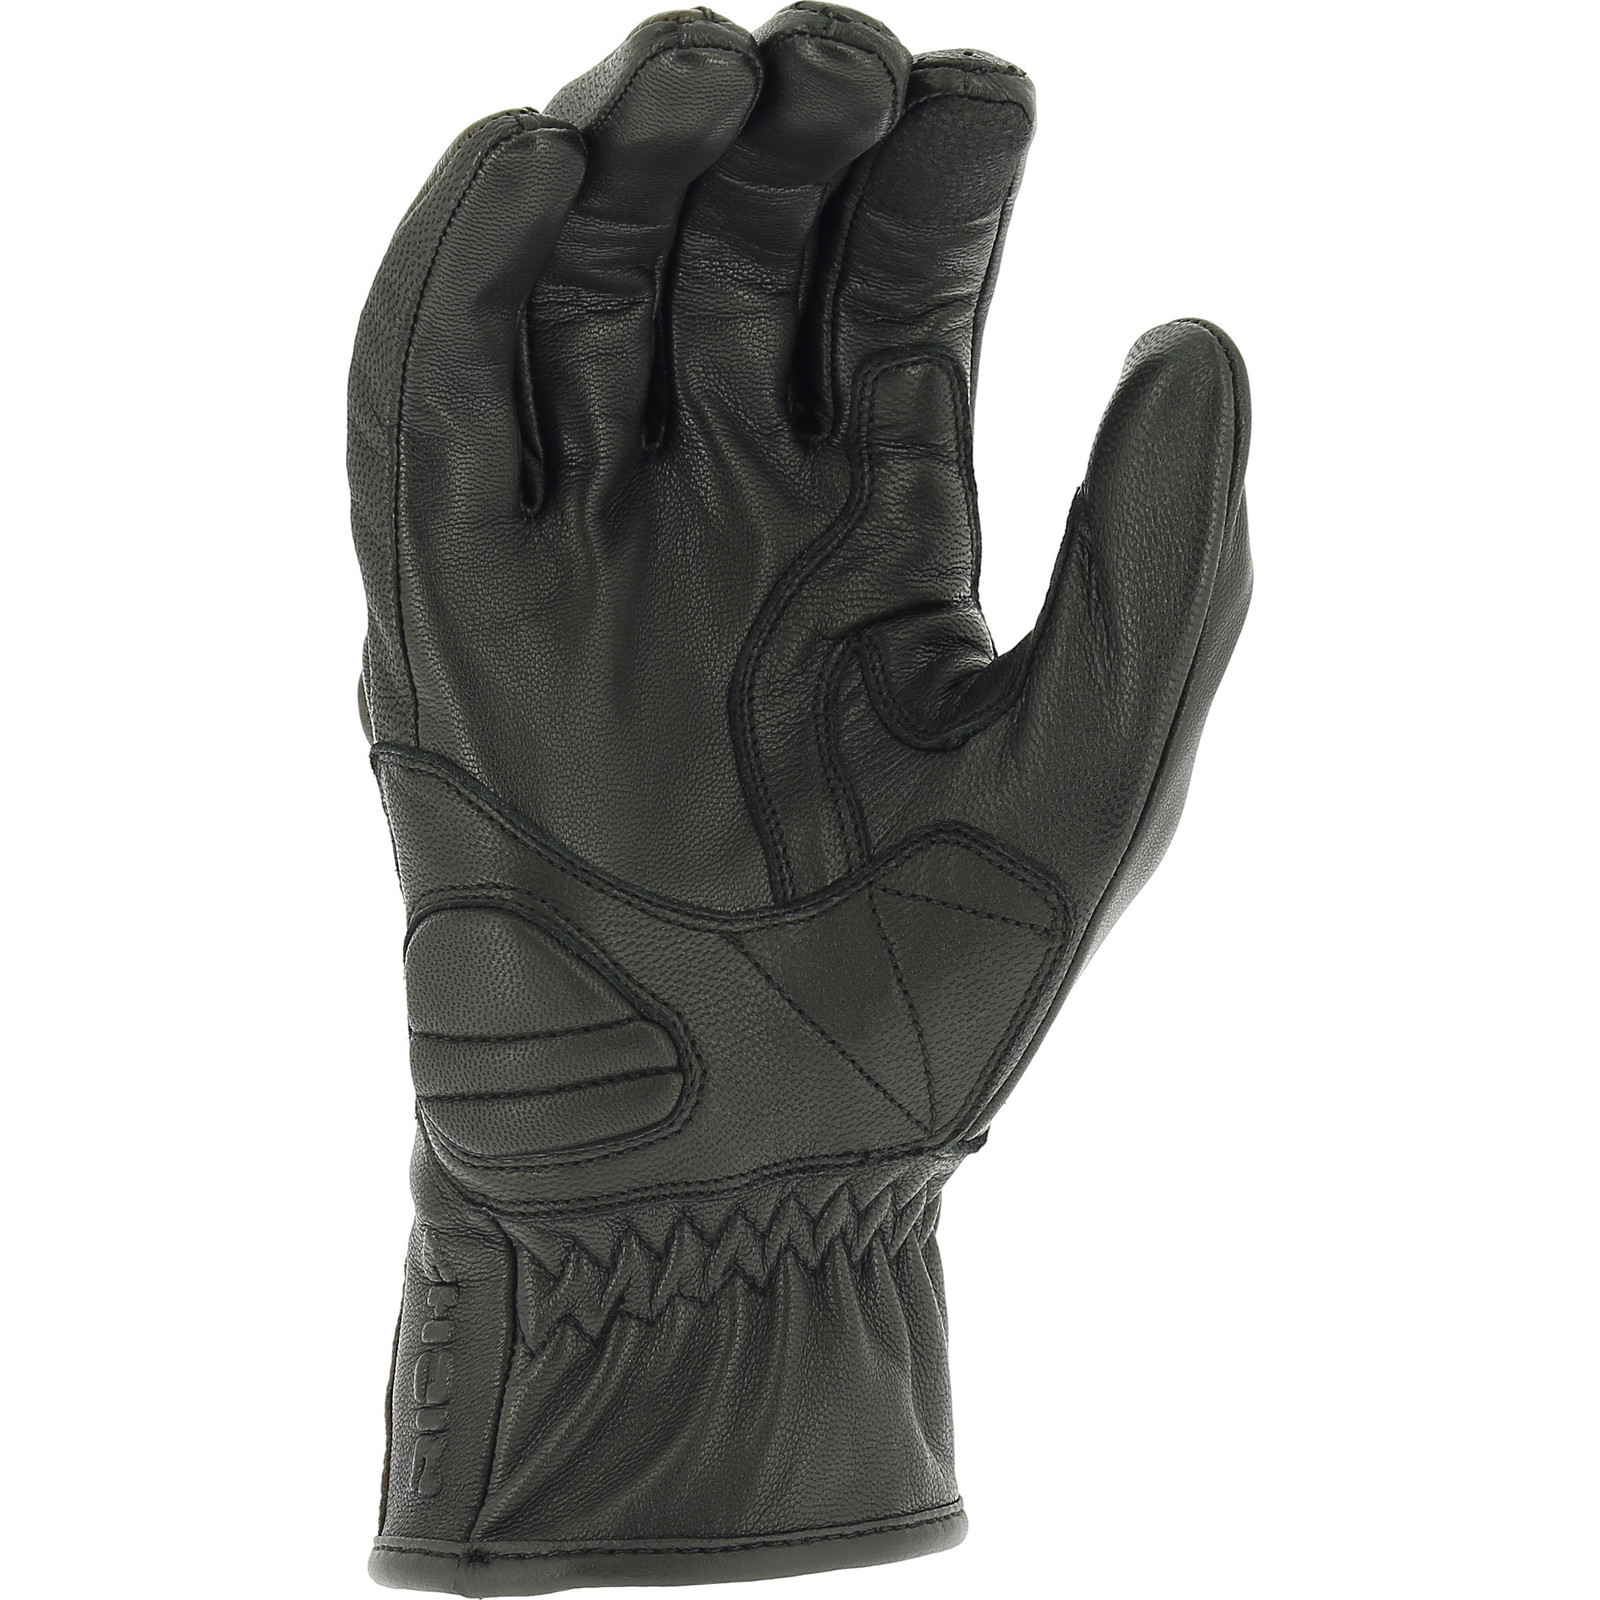 Motorcycle gloves richa - Richa Steve Leather Motorcycle Gloves Retro Biker Vented